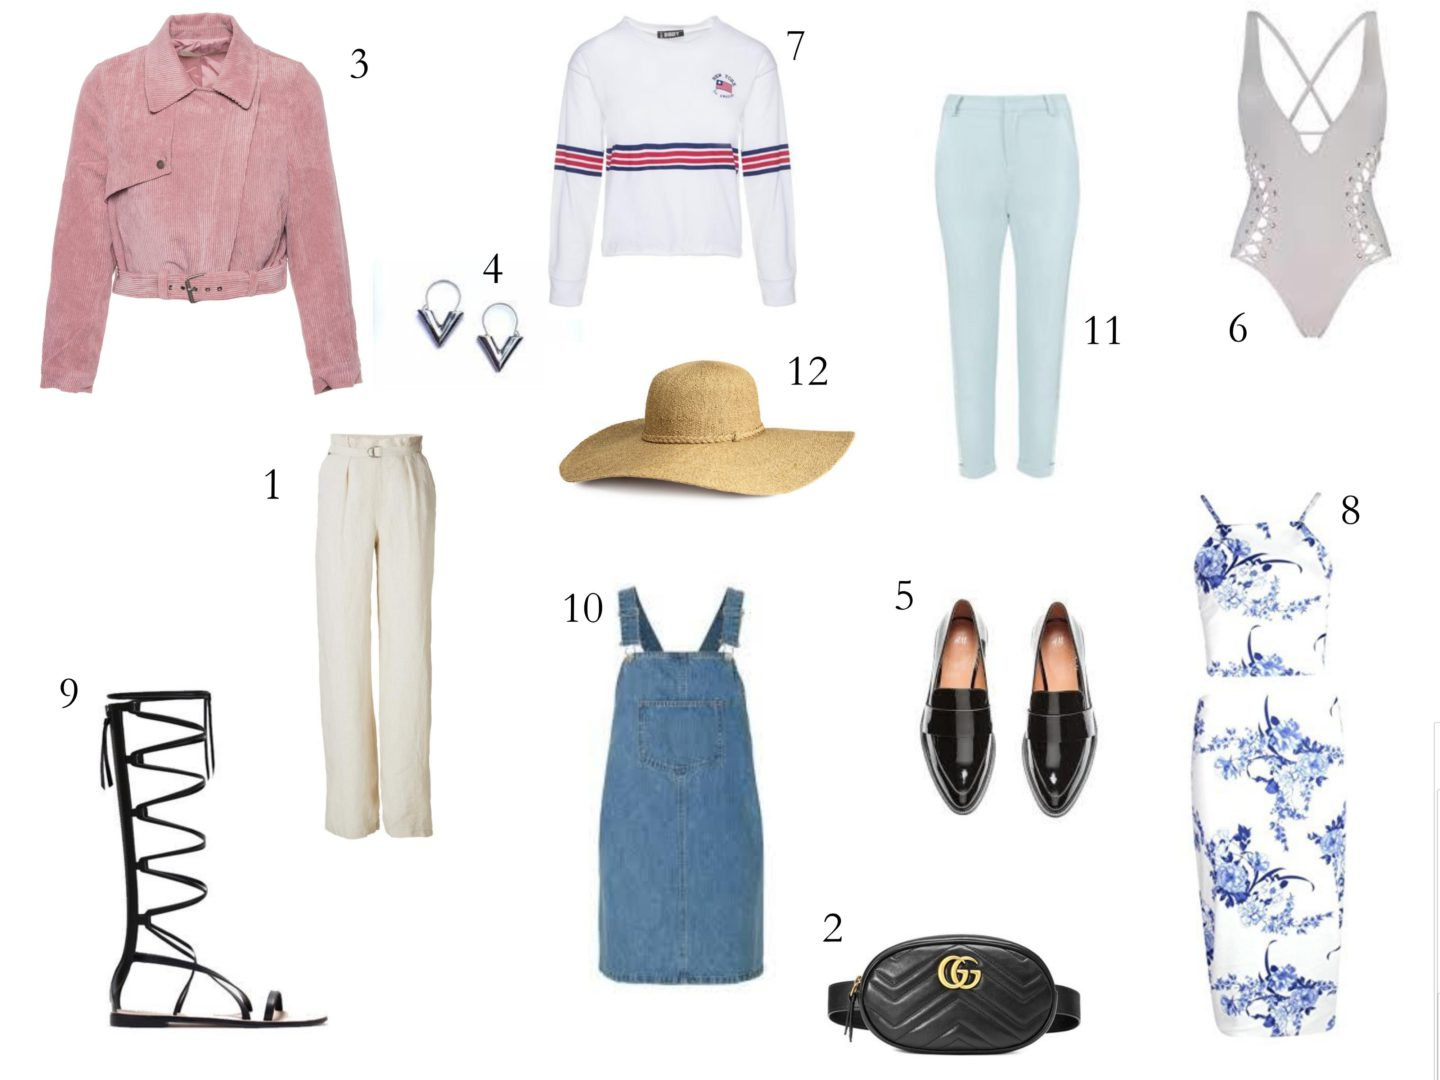 Fashion wishlist, summer wishlist, samenwerking